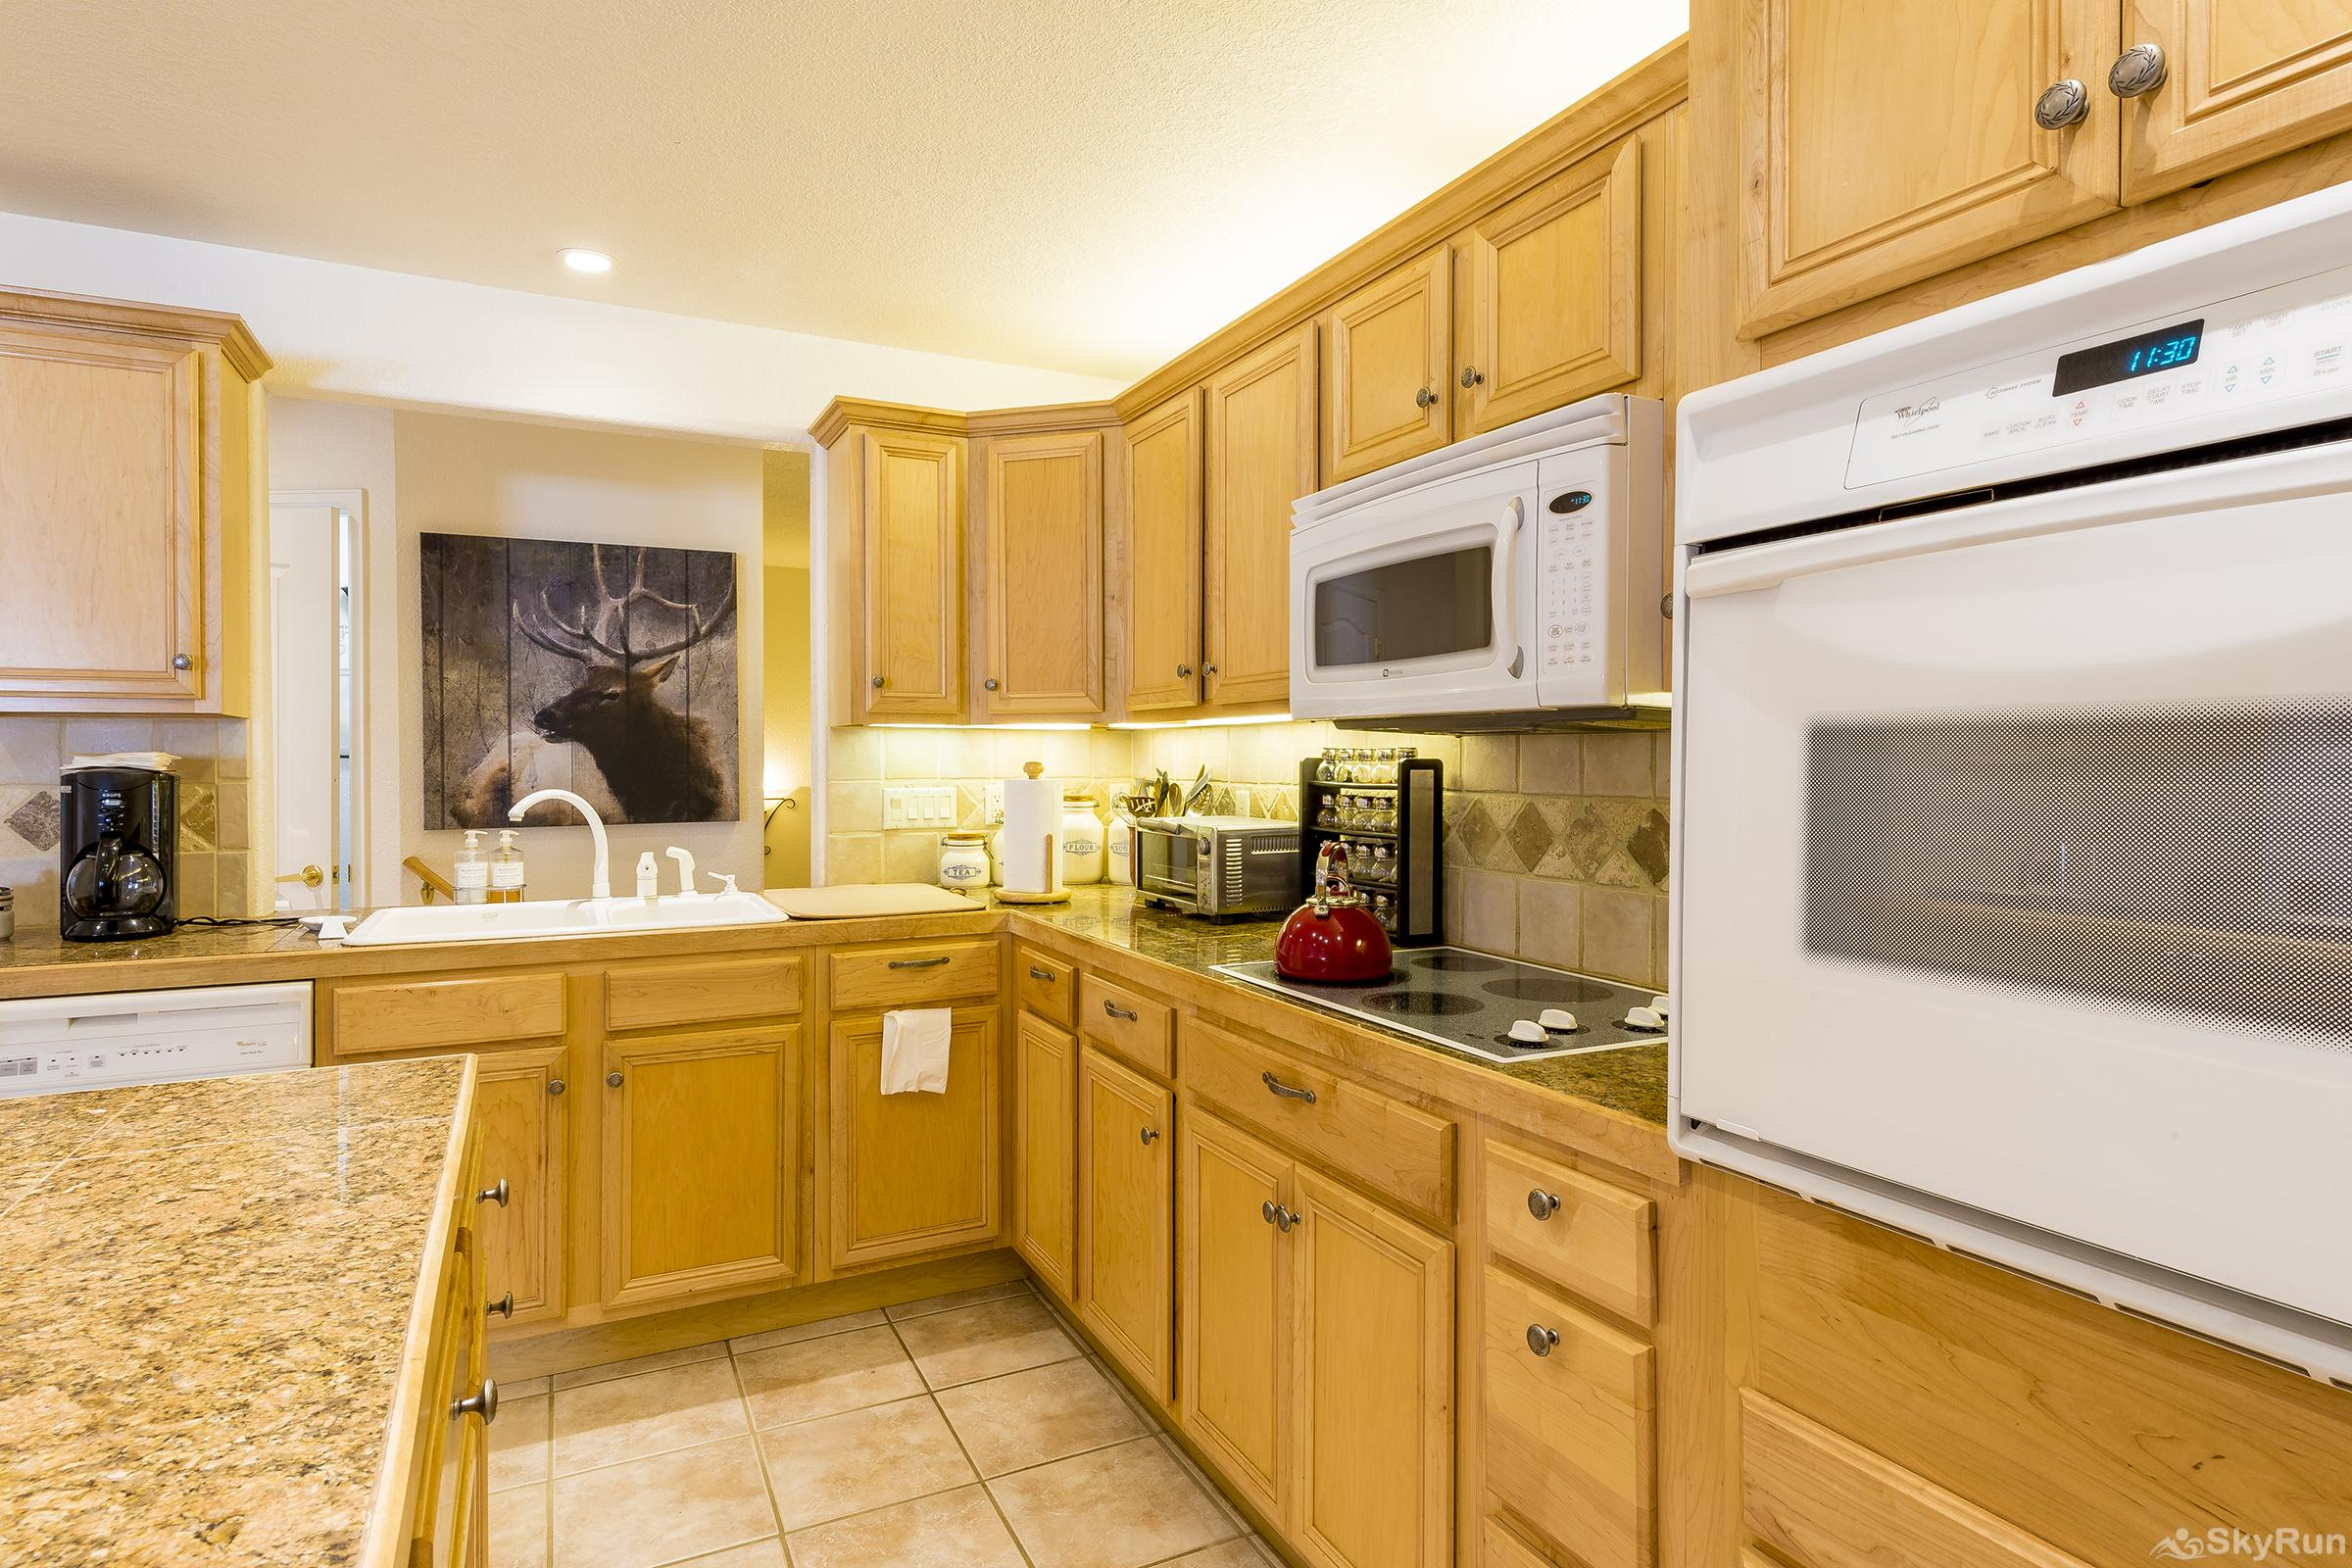 Villas 1450 Kitchen